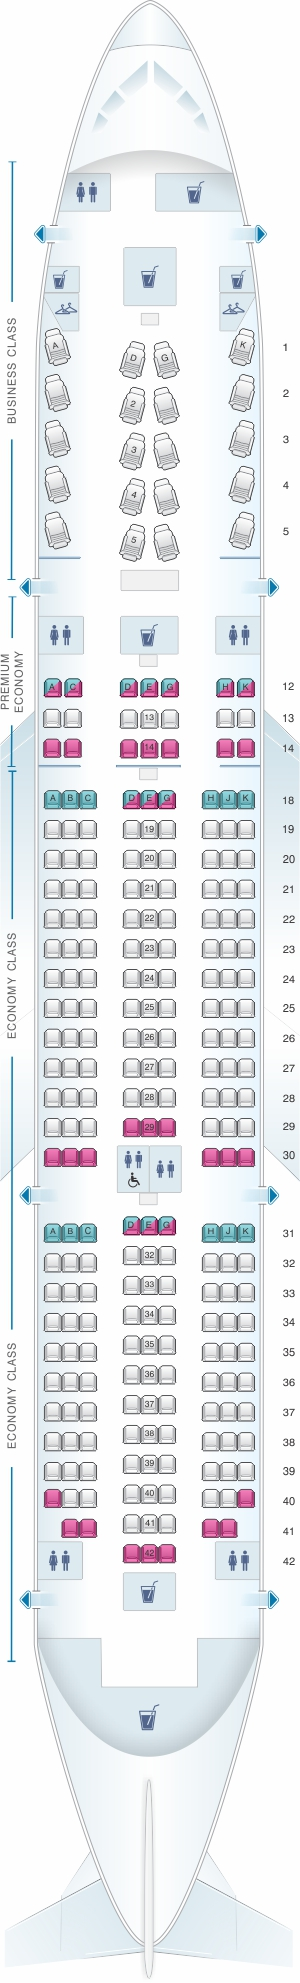 Seat map for Air Canada Boeing B787-8 (788) International